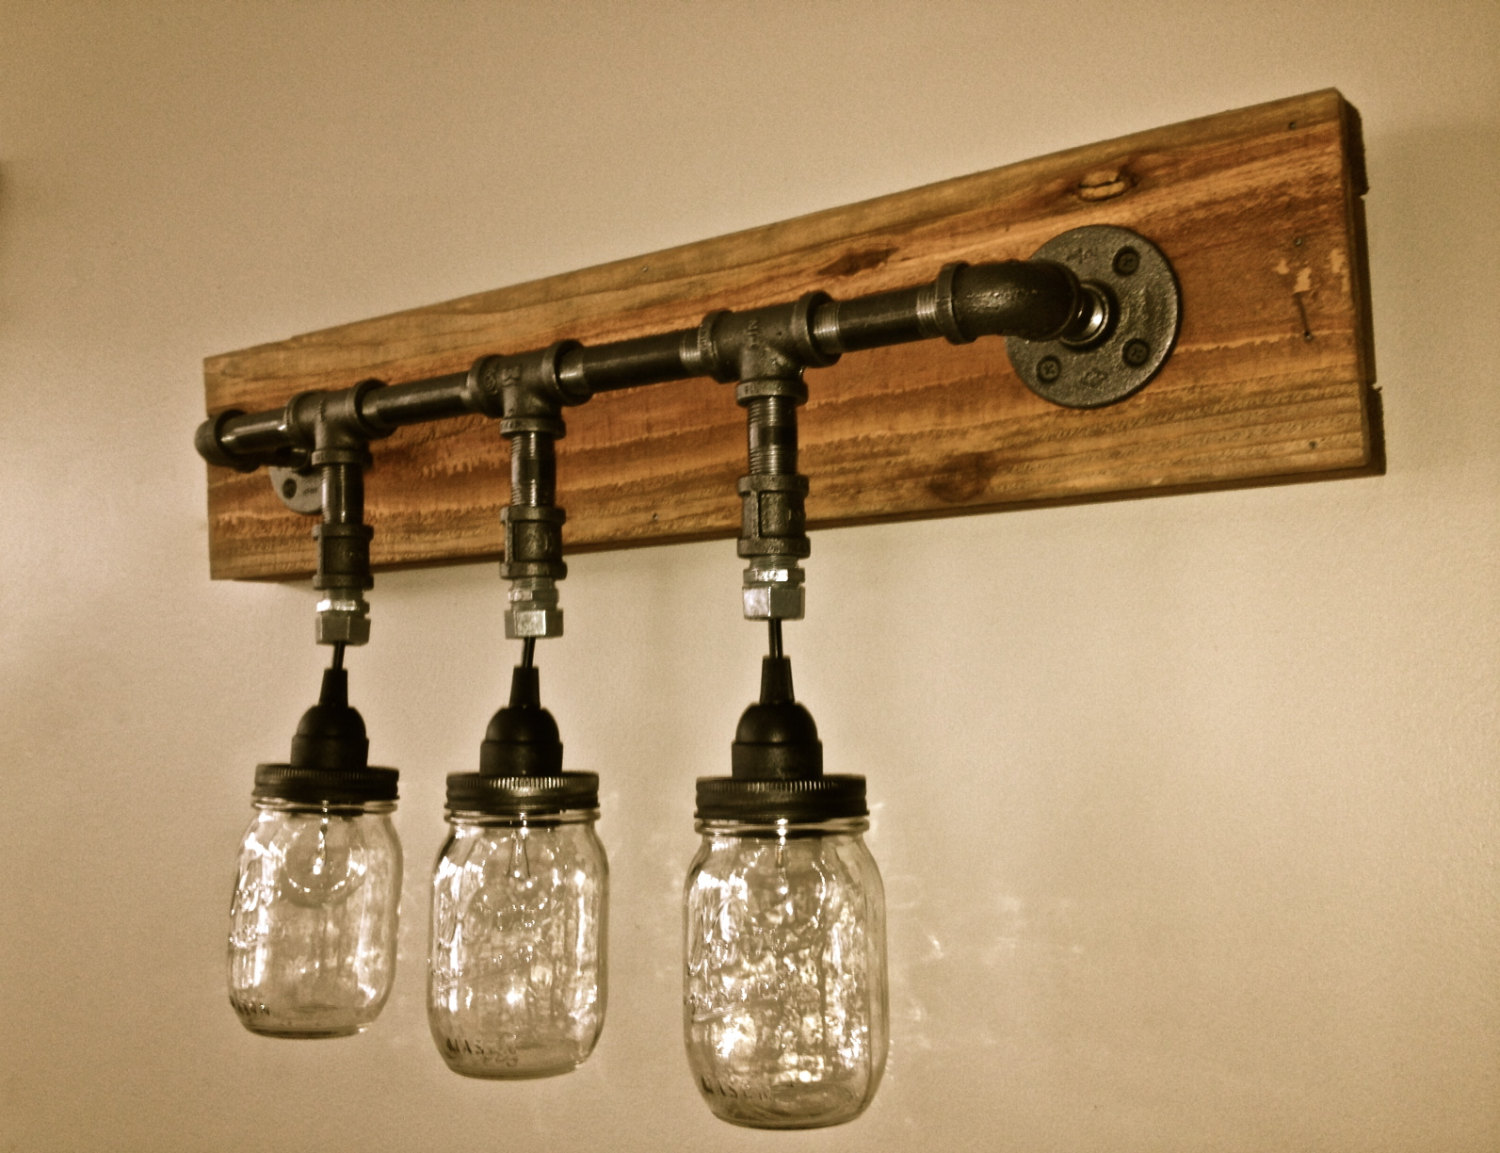 wooden light fixtures that will brighten your room